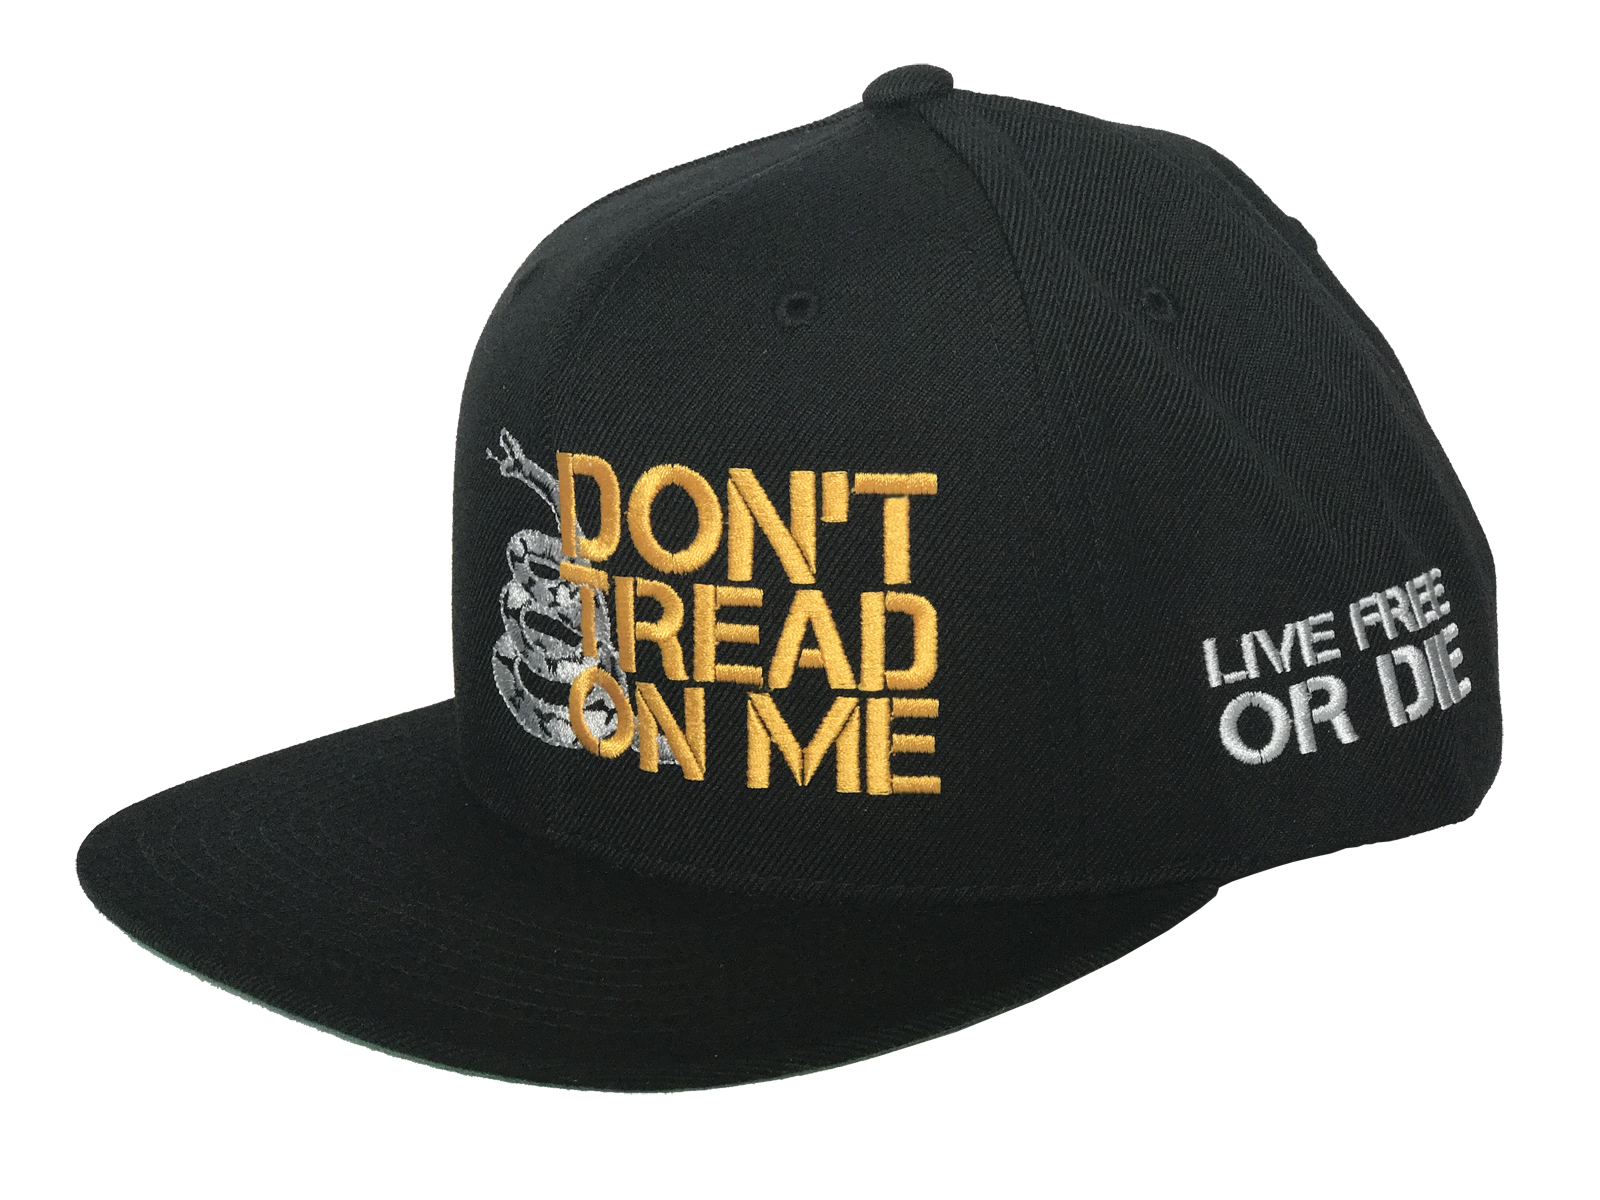 Don't Tread On Me Snapback (Black) - Revolutionary Patriot